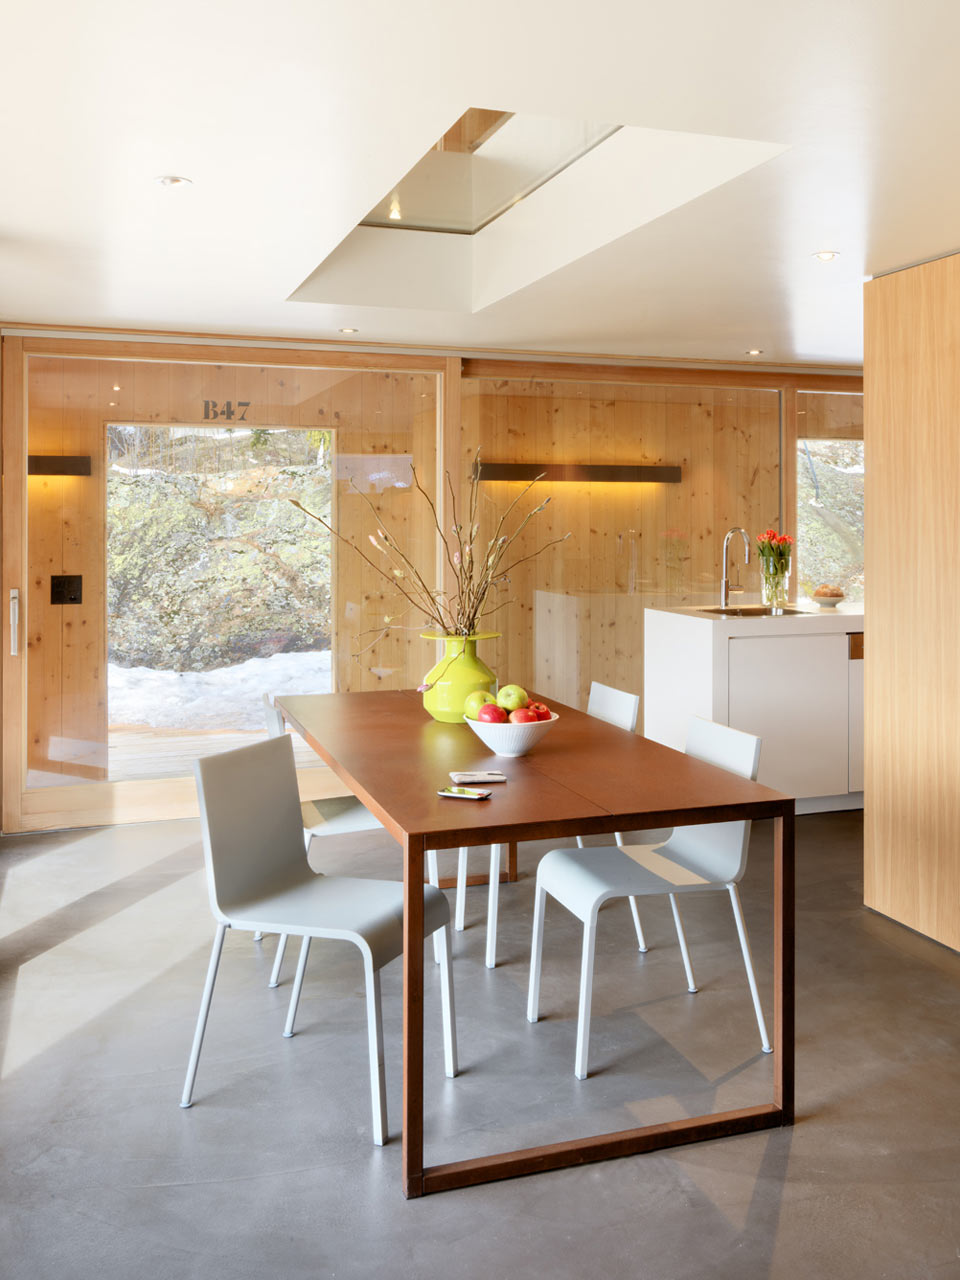 Former Army Building Becomes a Modern Mountain Home